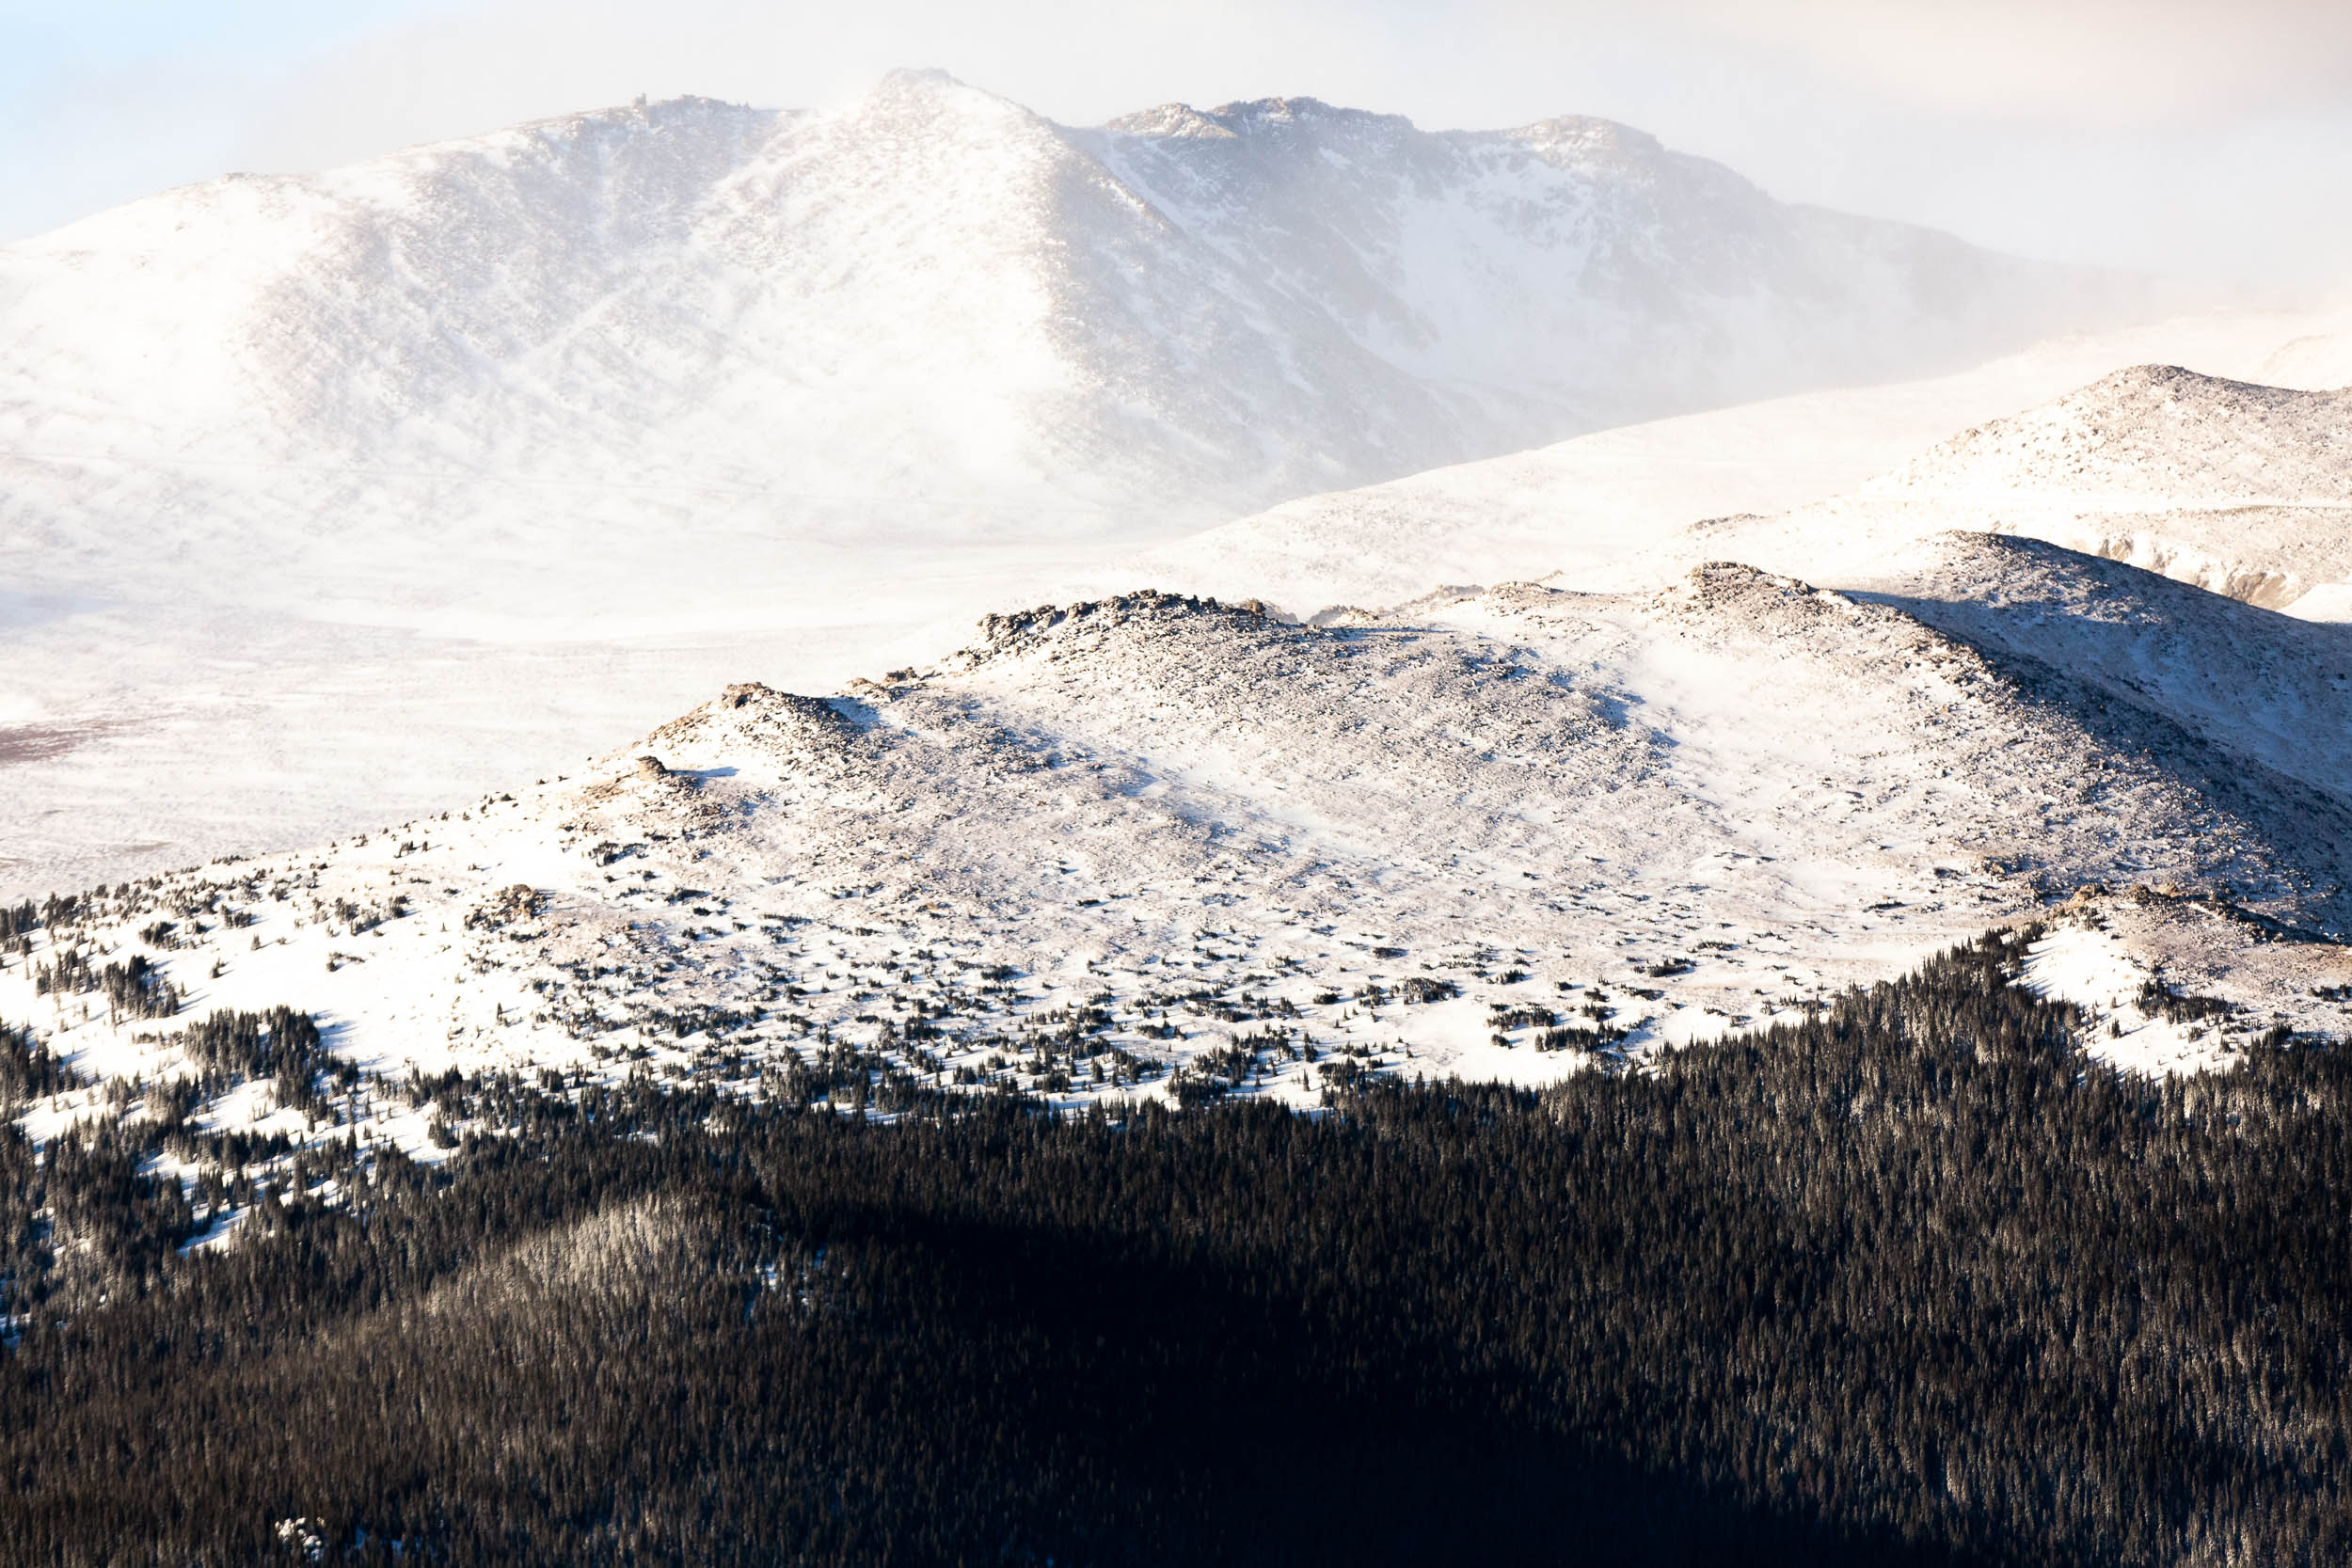 An aerial photograph of the snow-covered mountain range near Mt. Evans in Colorado's Rocky Mountains during winter.